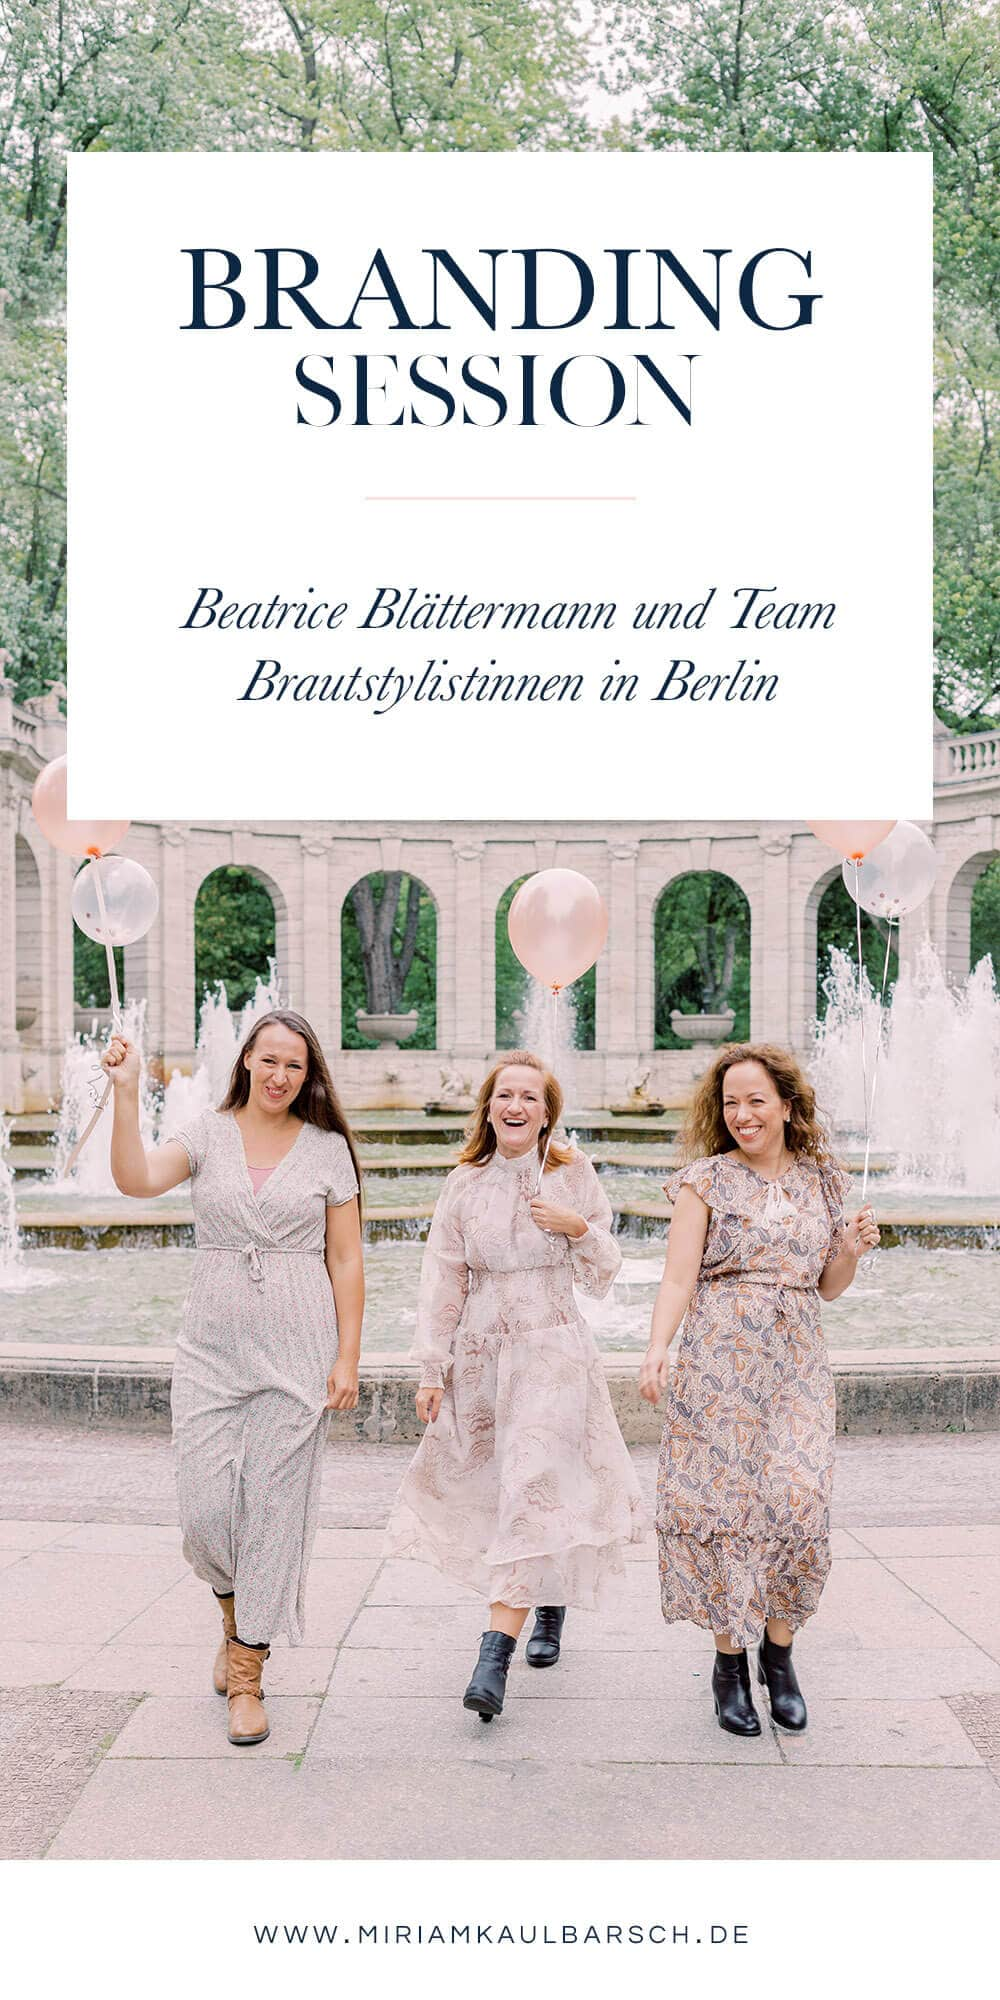 Branding Session mit Braut Stylistin Beatrice Blättermann in Berlin